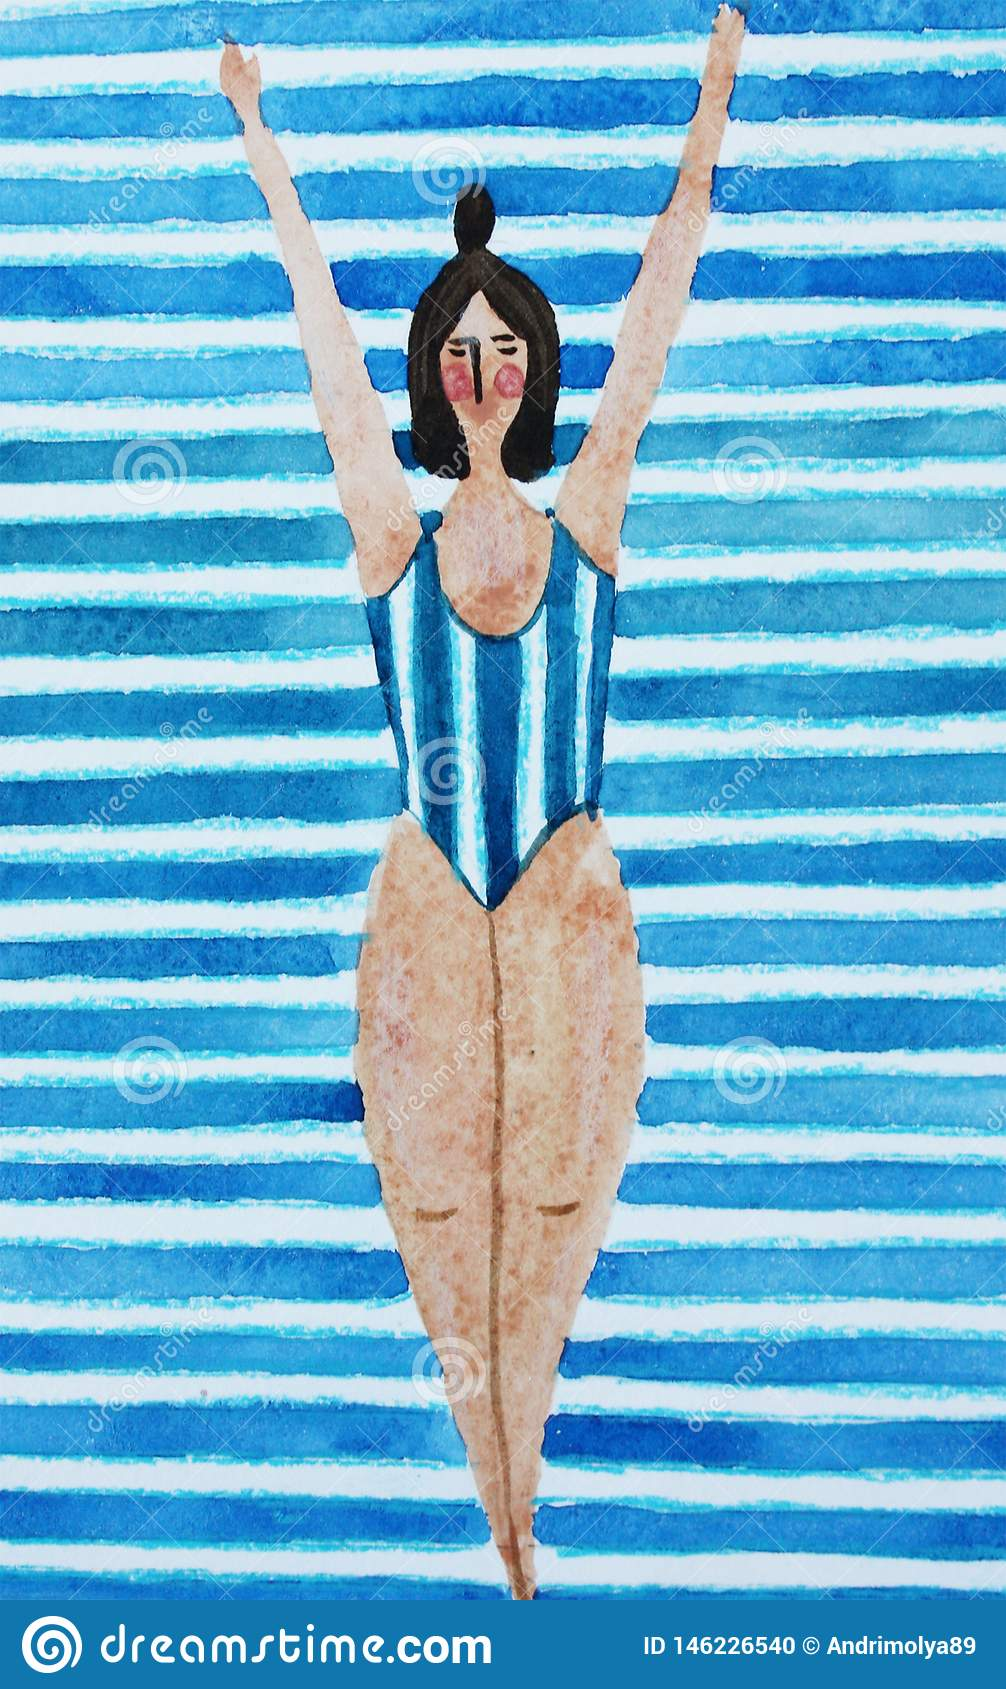 Illustration with a girl in a blue striped swimsuit